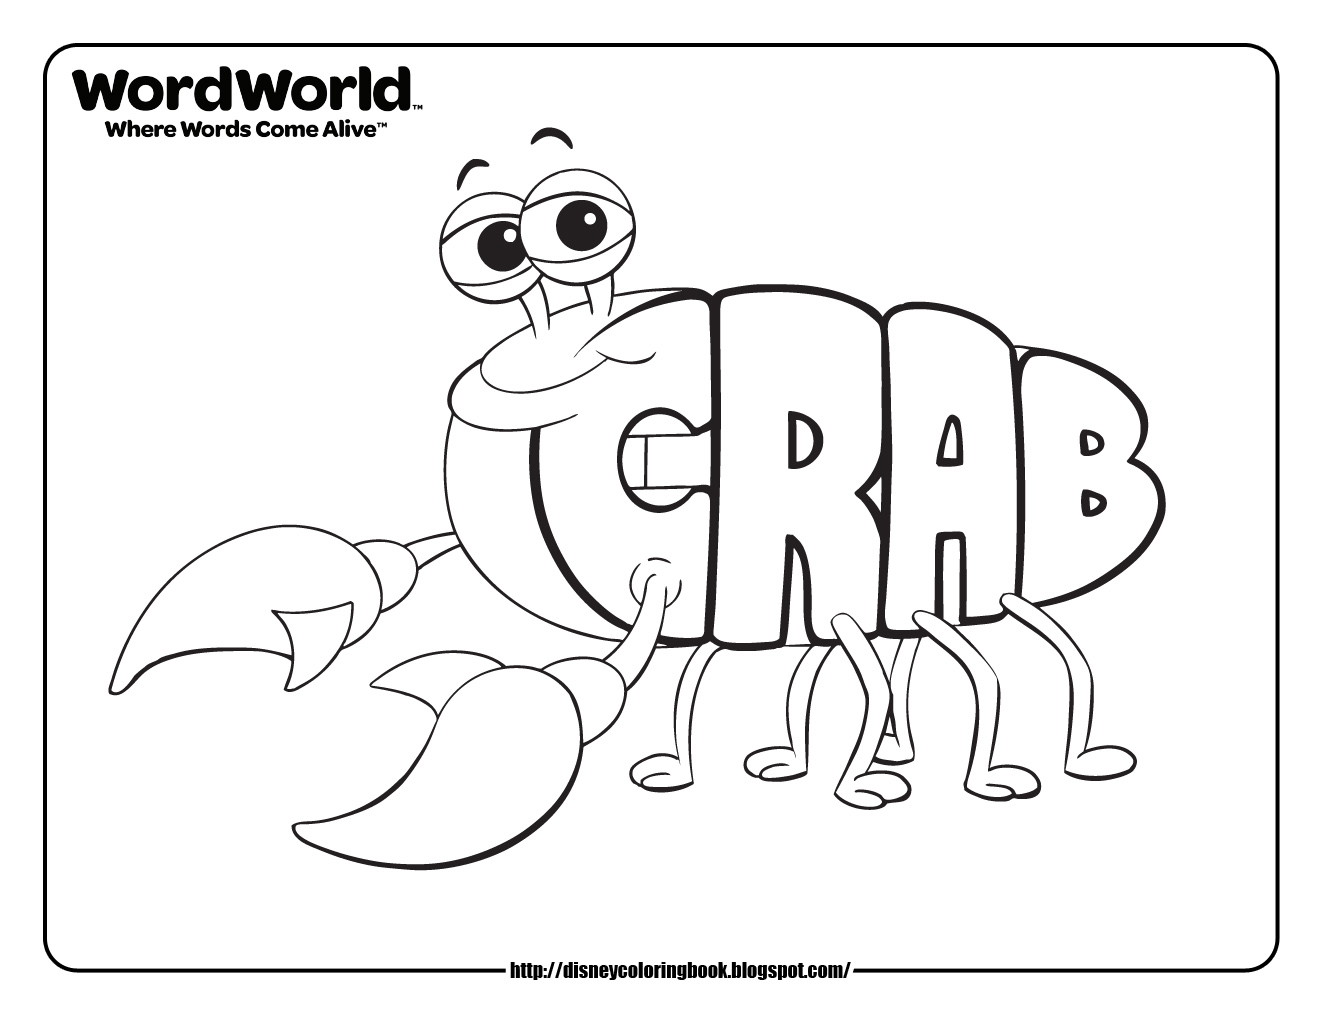 Wordworld 2 Free Disney Coloring Sheets Learn To